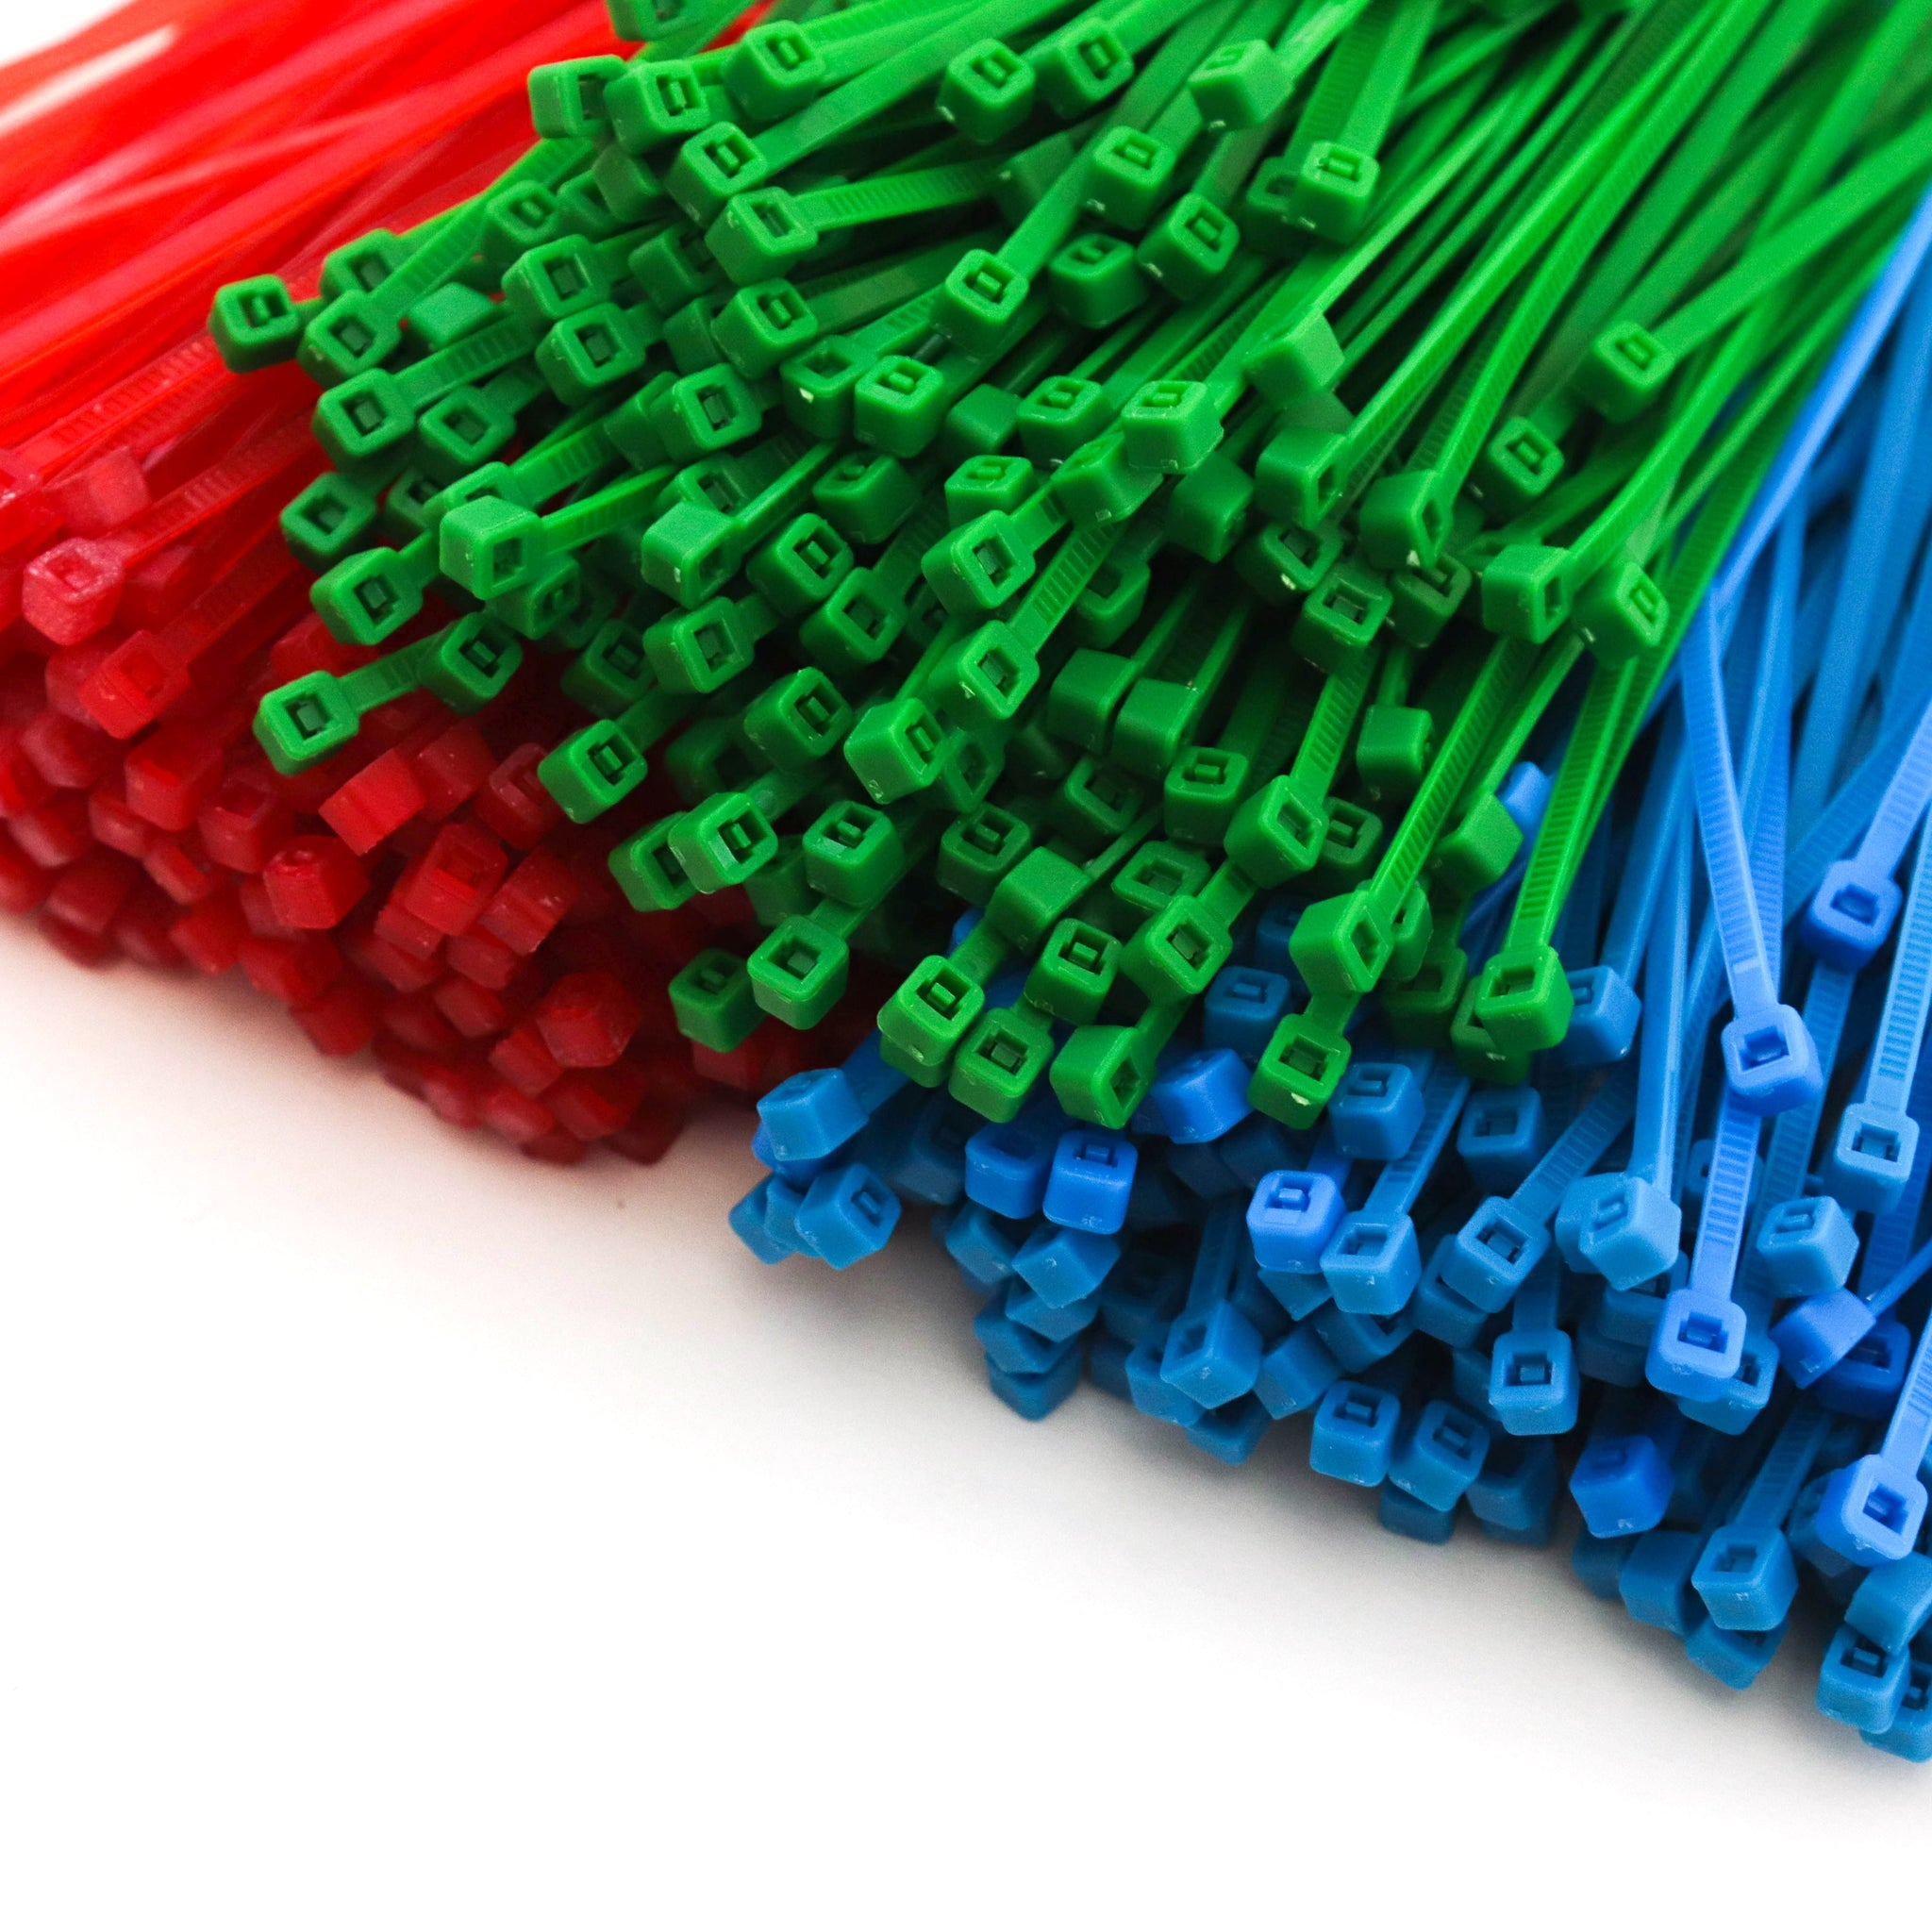 3000 Heavy Duty 4 Inch 18 Pound Color Cable Ties Nylon Wraps 3 Colors (1000 Red, 1000 Green, 1000 Blue) Deluxe Bulk Combo Kit